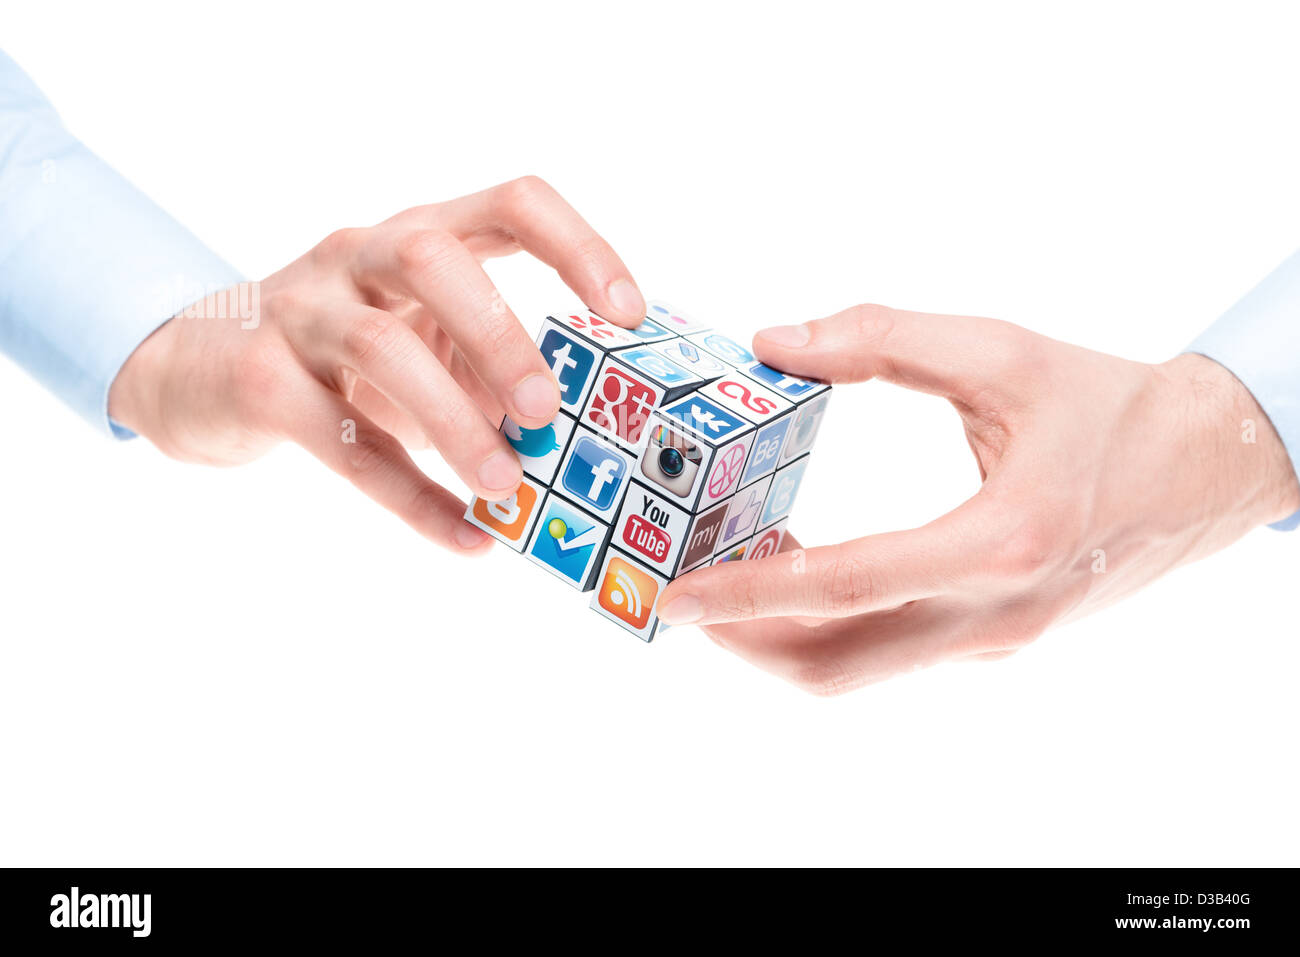 A hands holding rubik's cube with logotypes of well-known social media brand's. - Stock Image